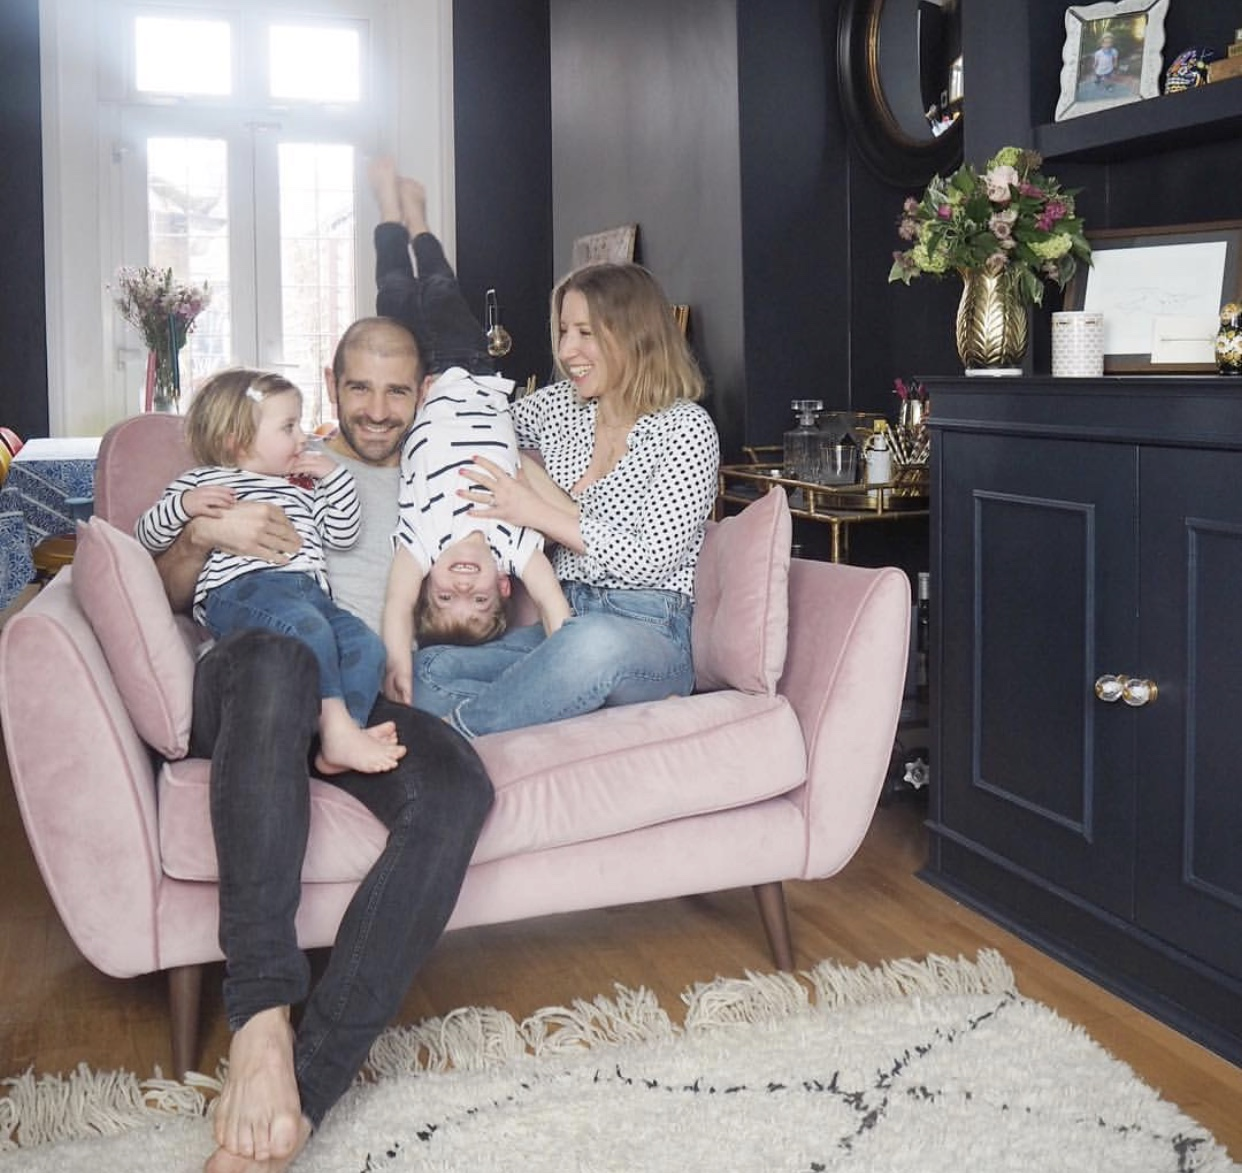 Image of Jess Hurrell with the family on the sofa